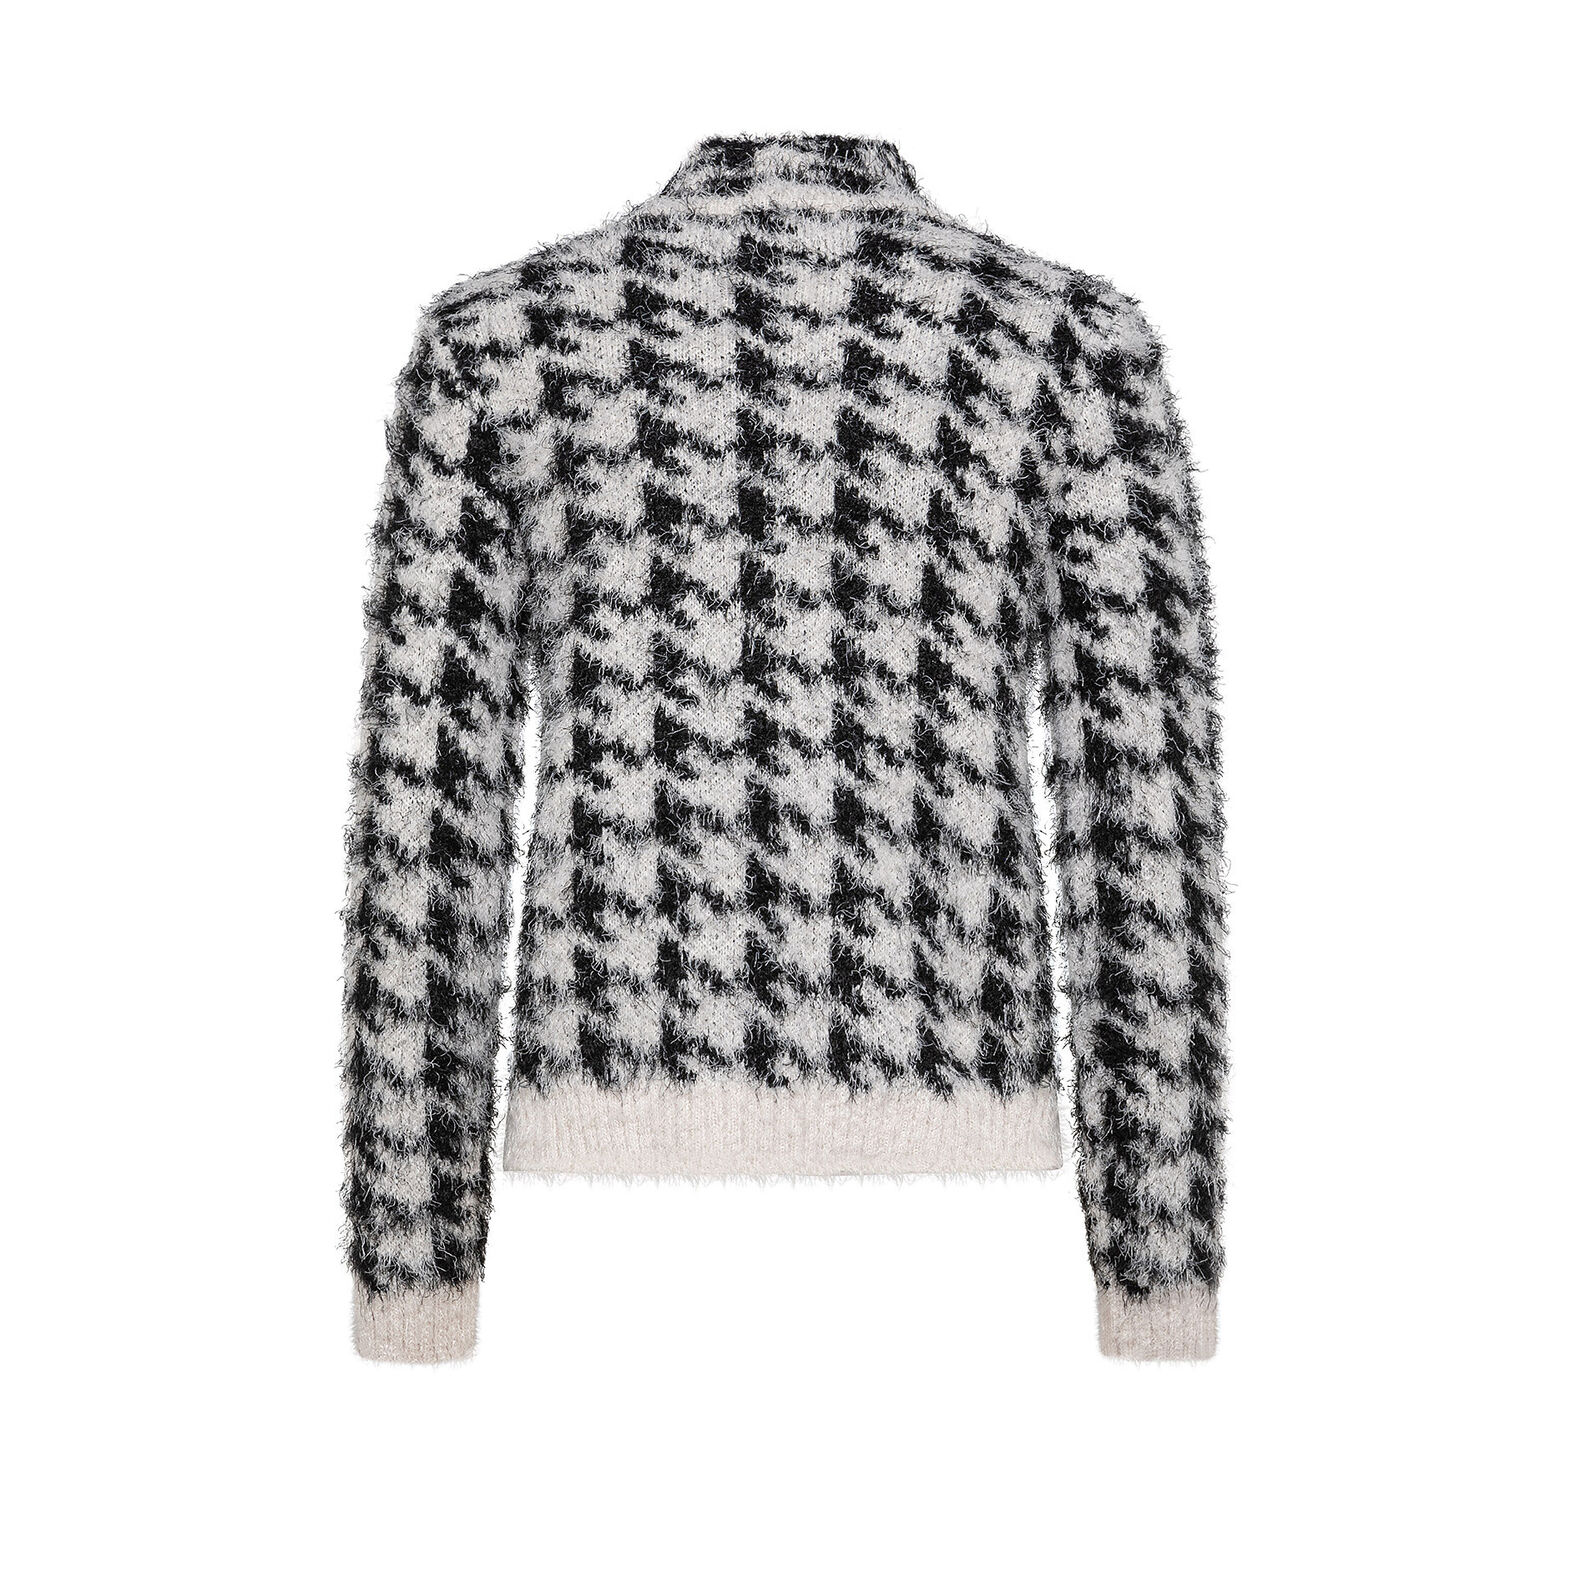 Houndstooth patterned teddy cardigan